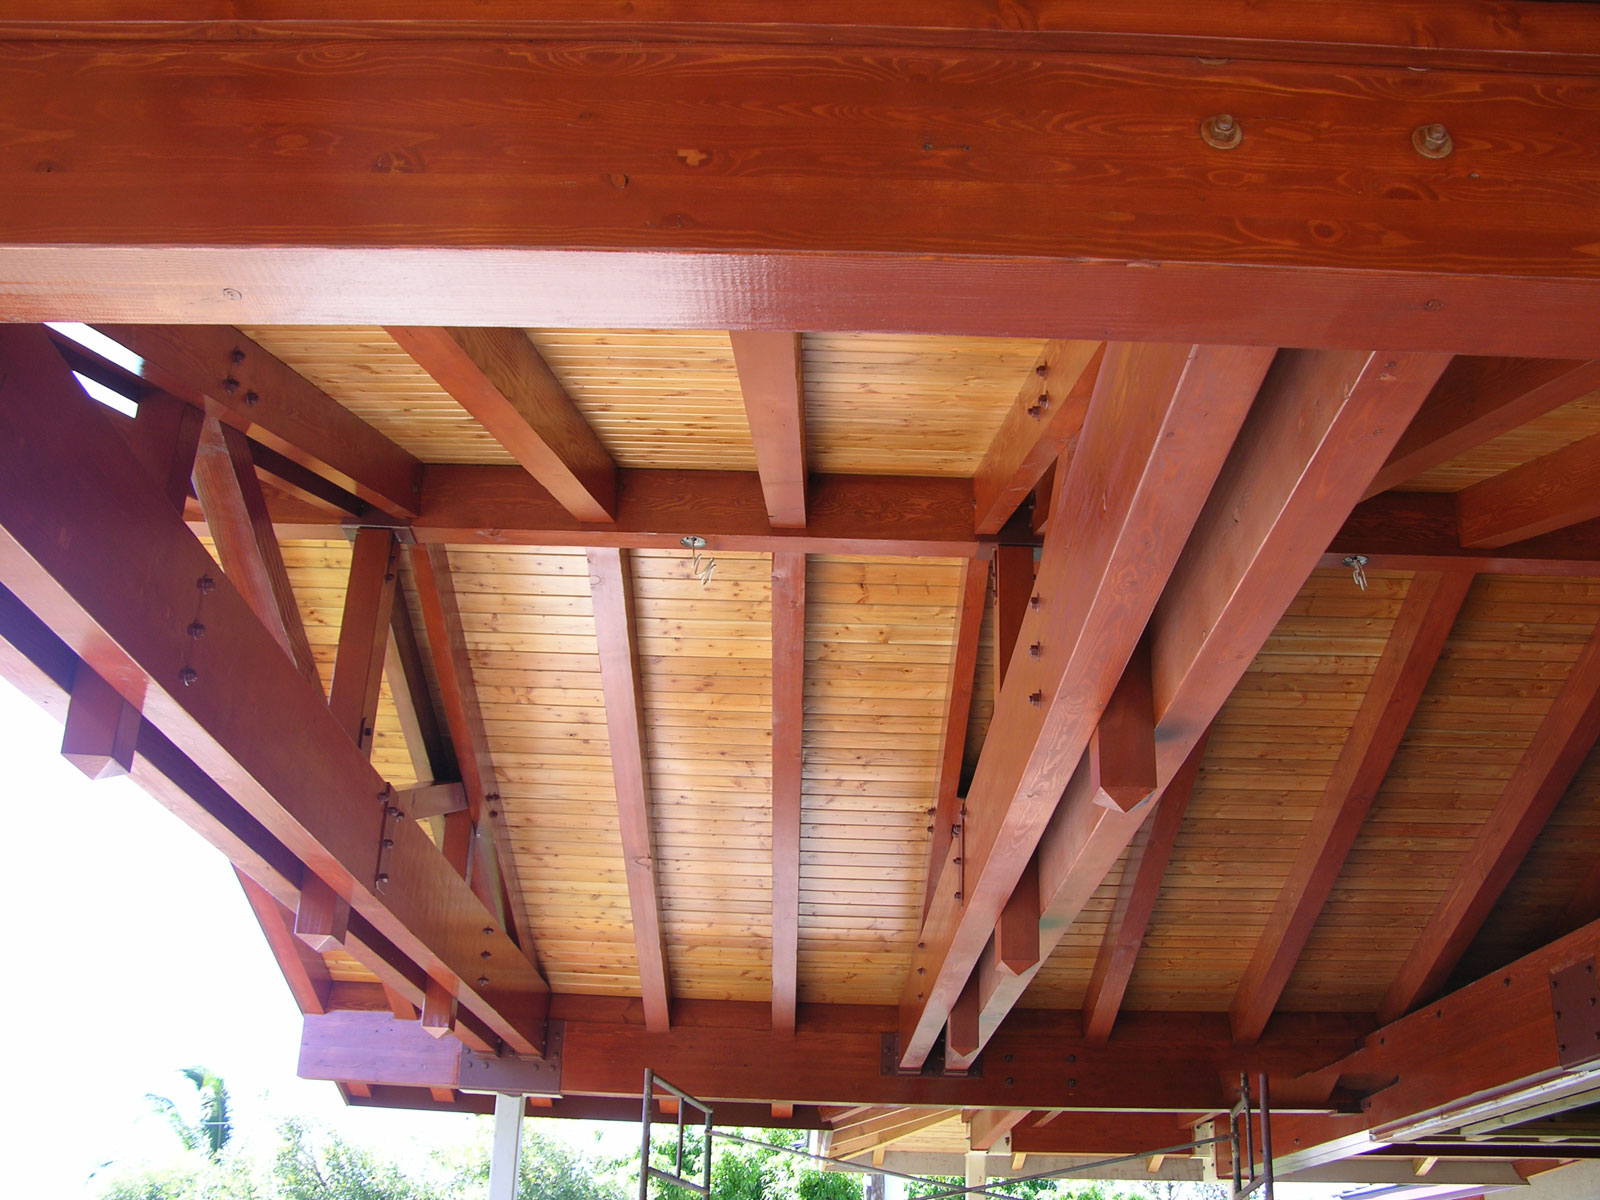 Maui ceiling after lacquer finish